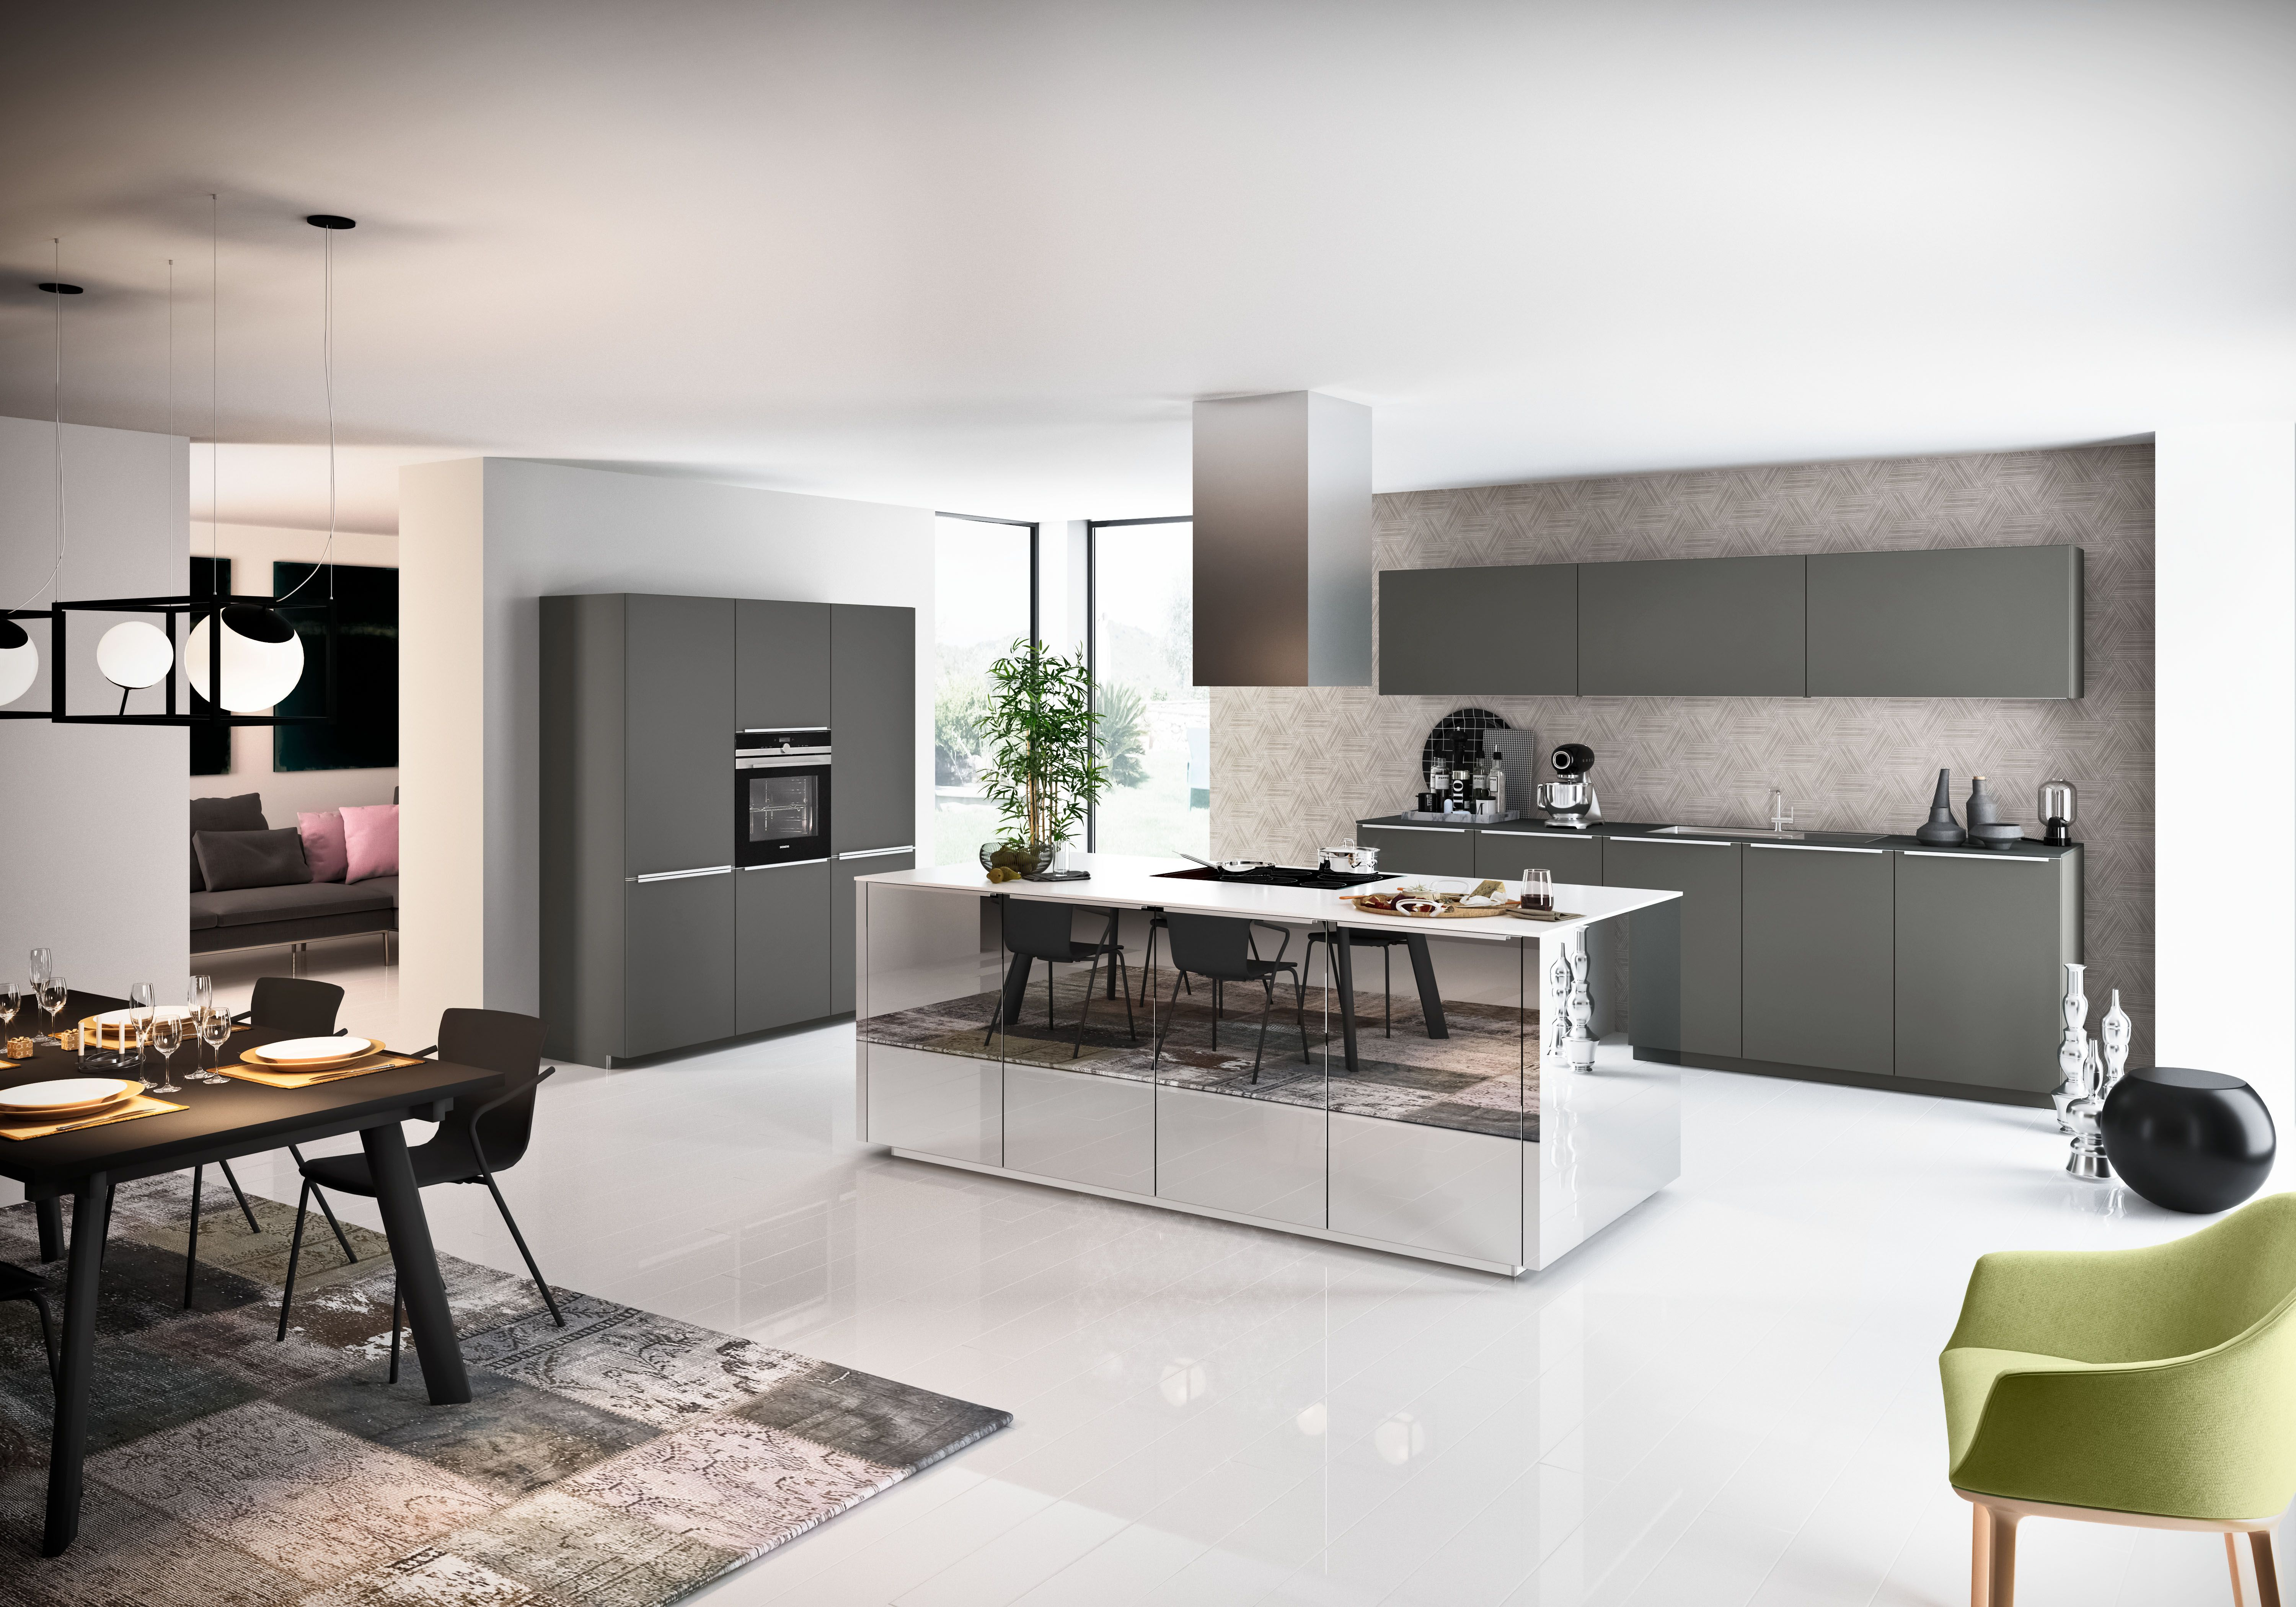 Cuisines Nolte Neo Salon Detaille Nolte Kuechen De Home Kitchen In 2019